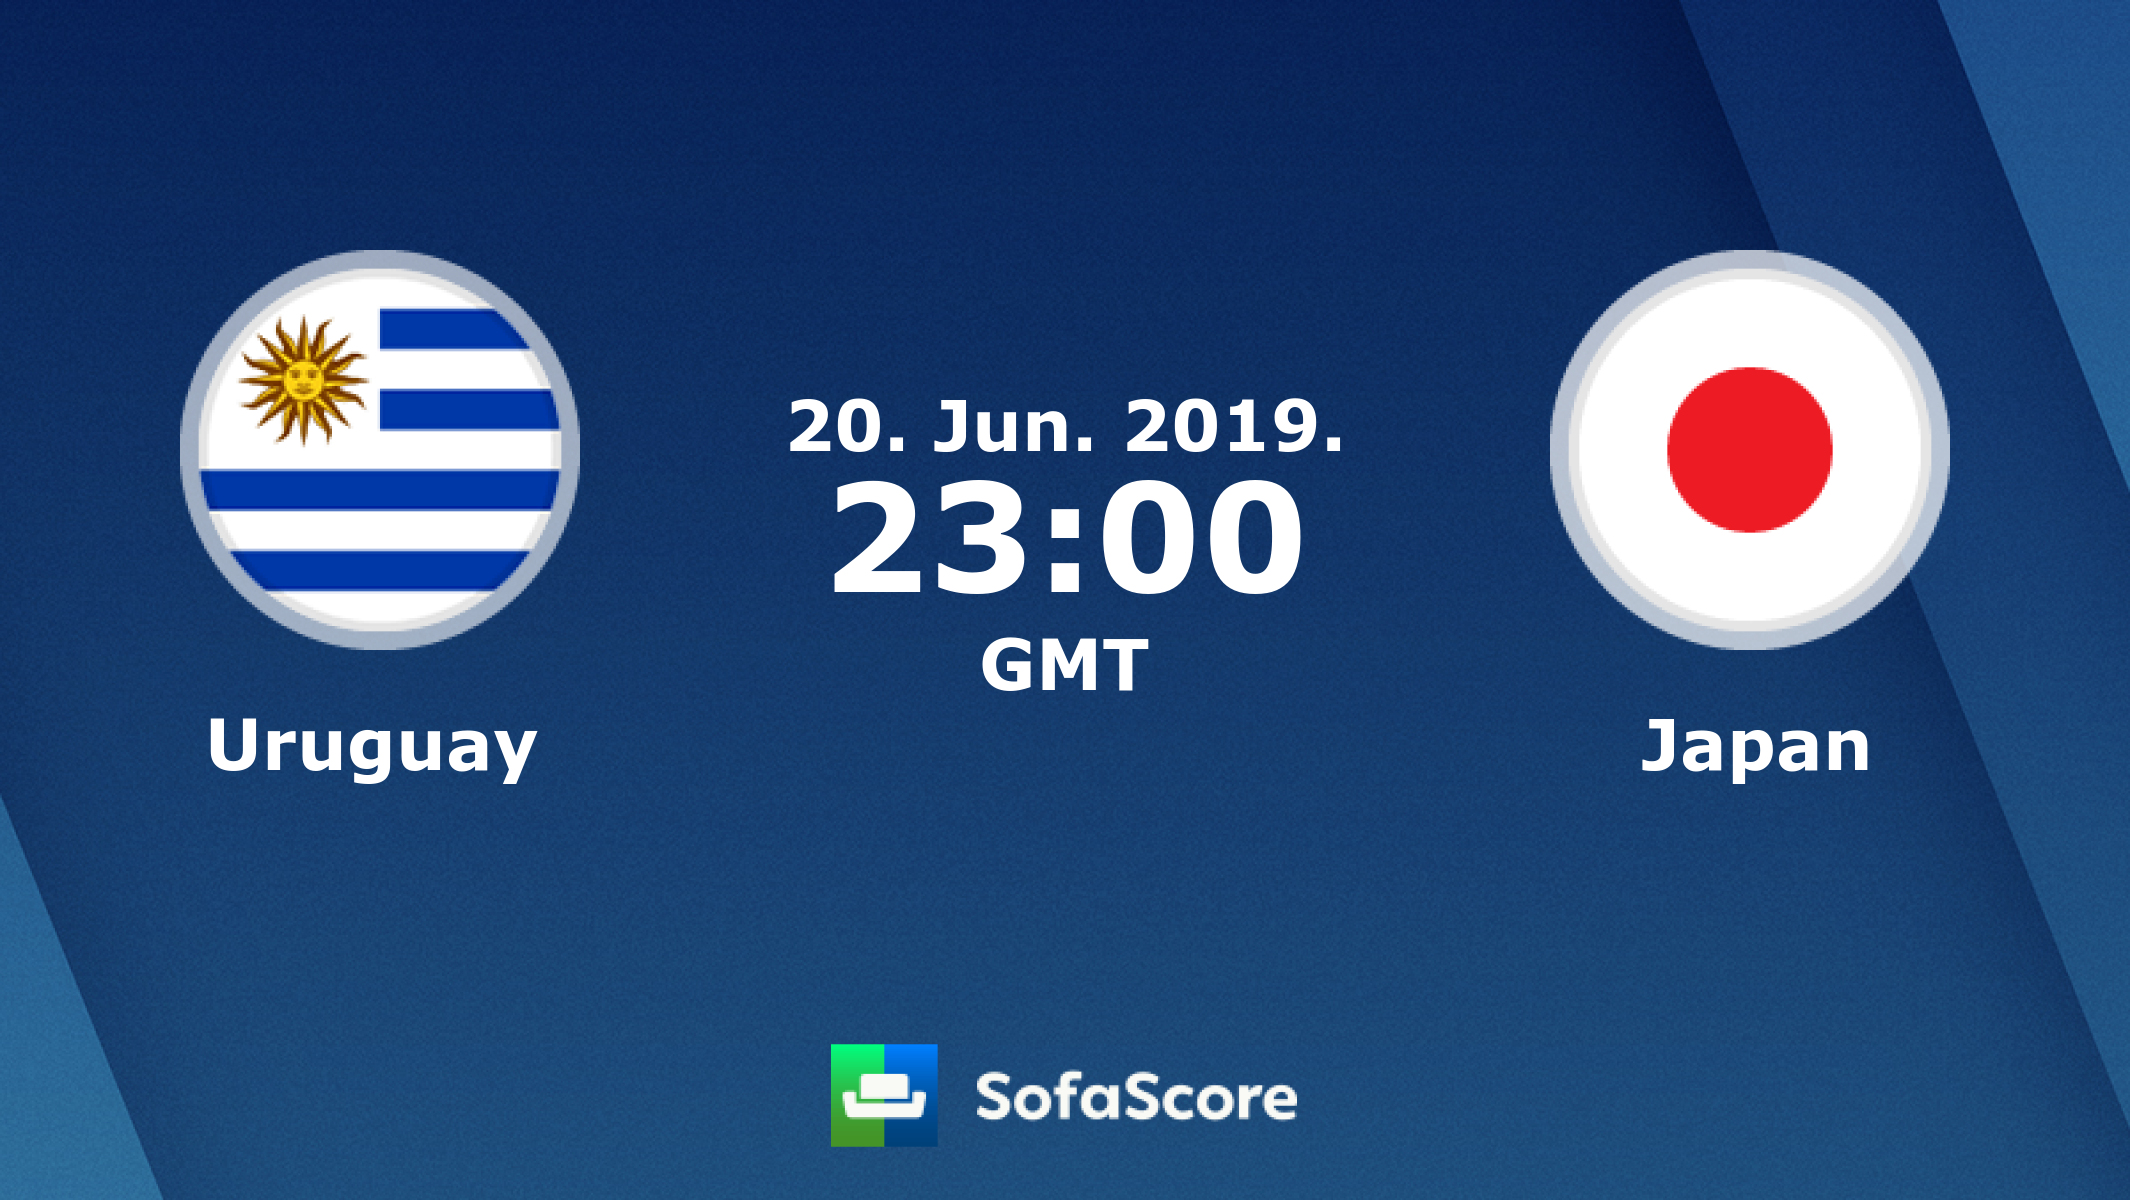 Uruguay Japan live score, video stream and H2H results